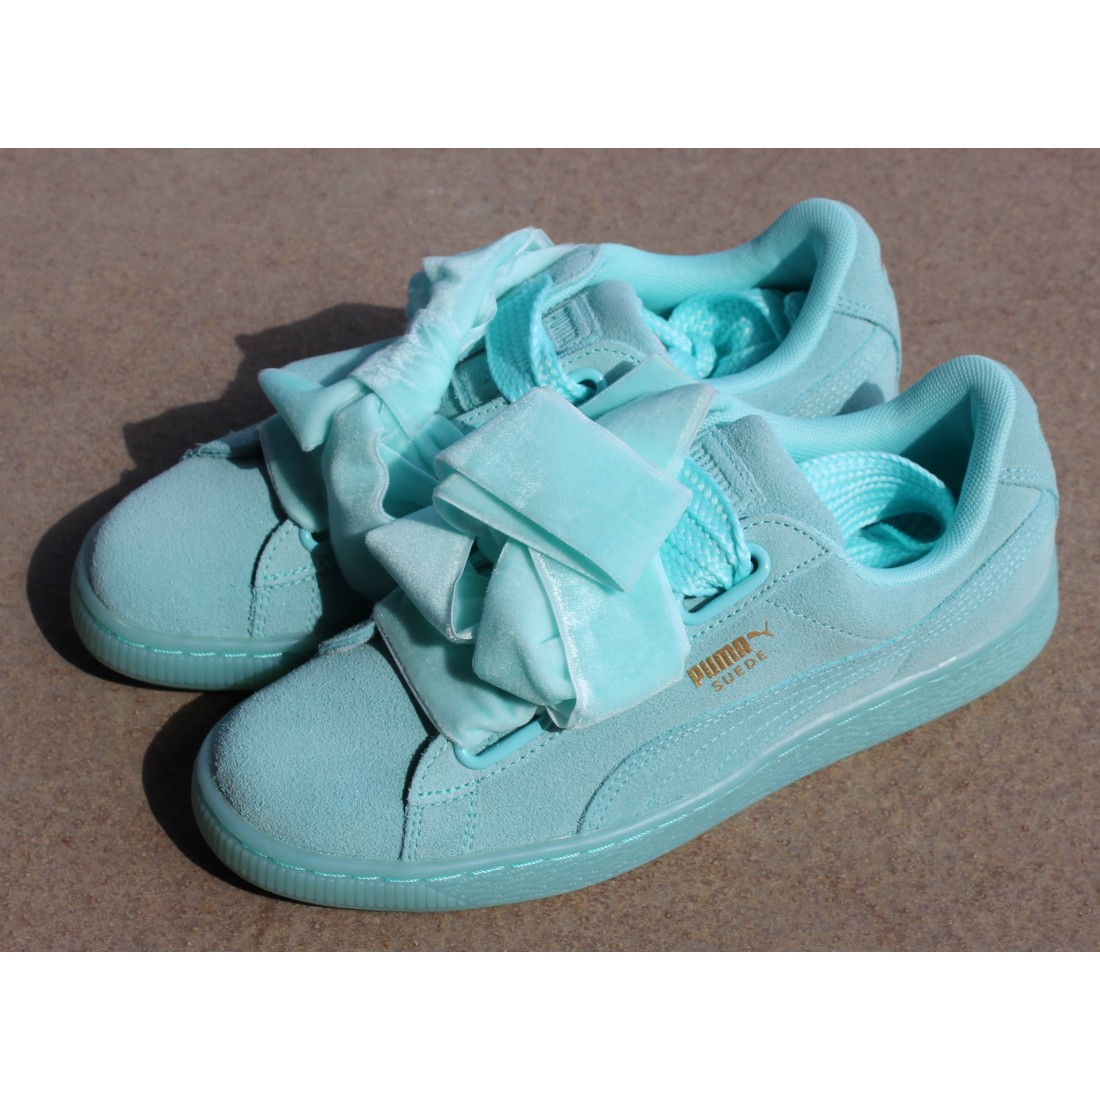 sports shoes 88345 6c0be Sneakersy Puma Suede Heart Reset 363229 01